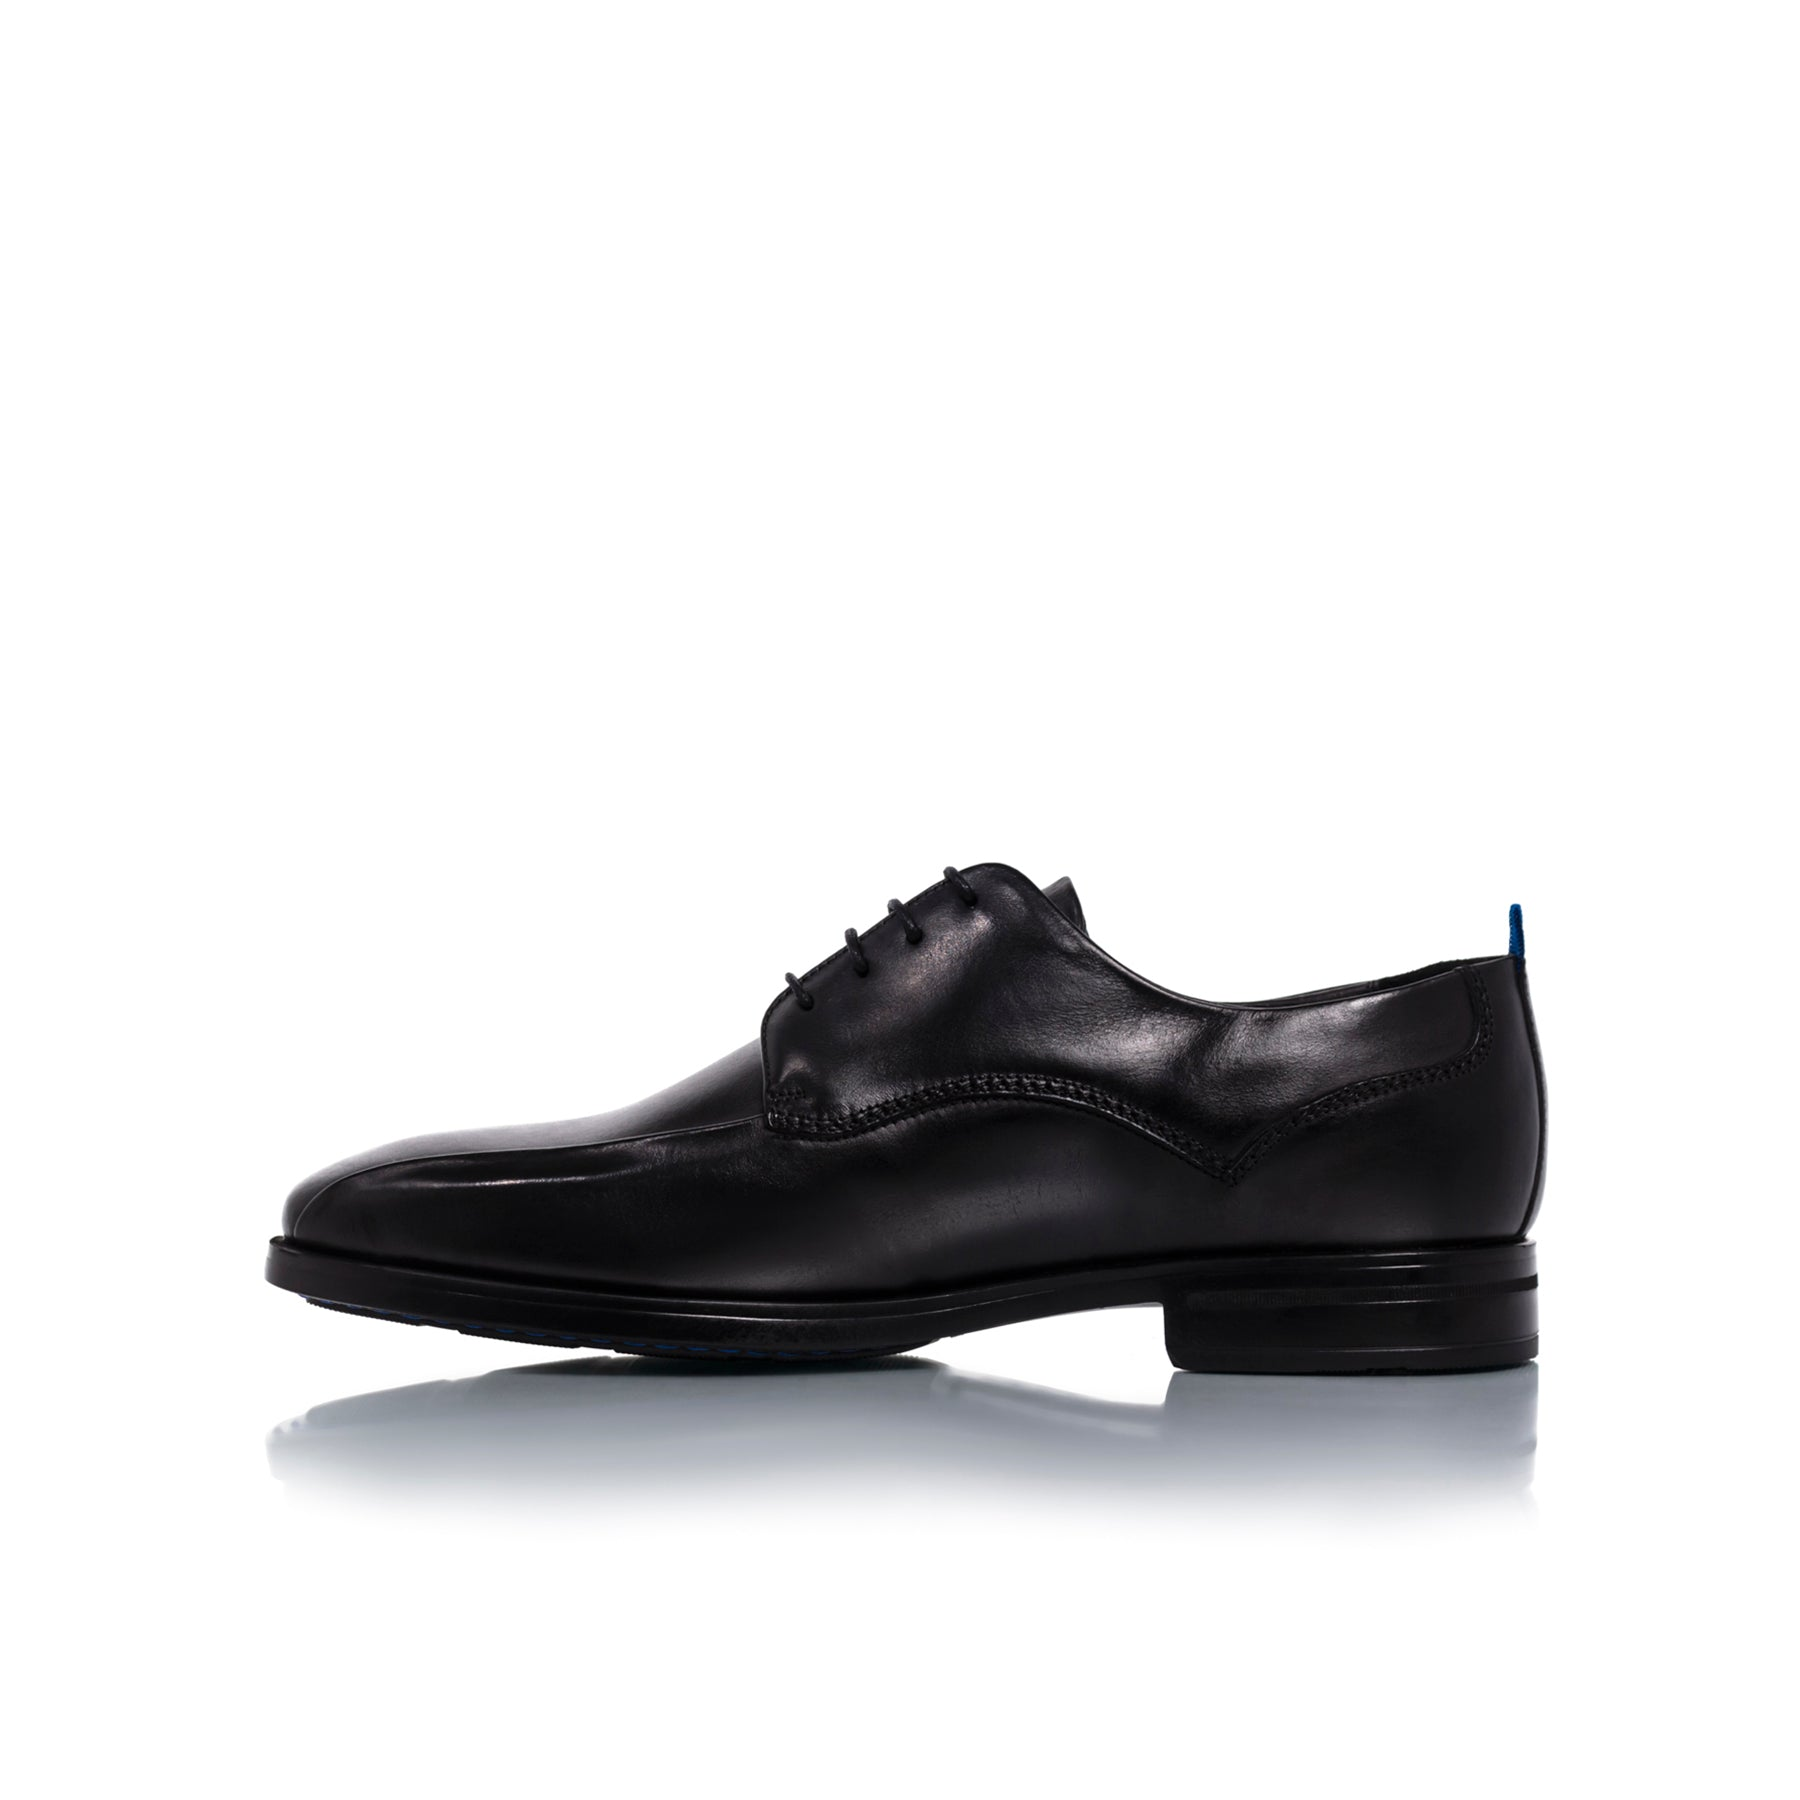 Ben Black Leather Shoes